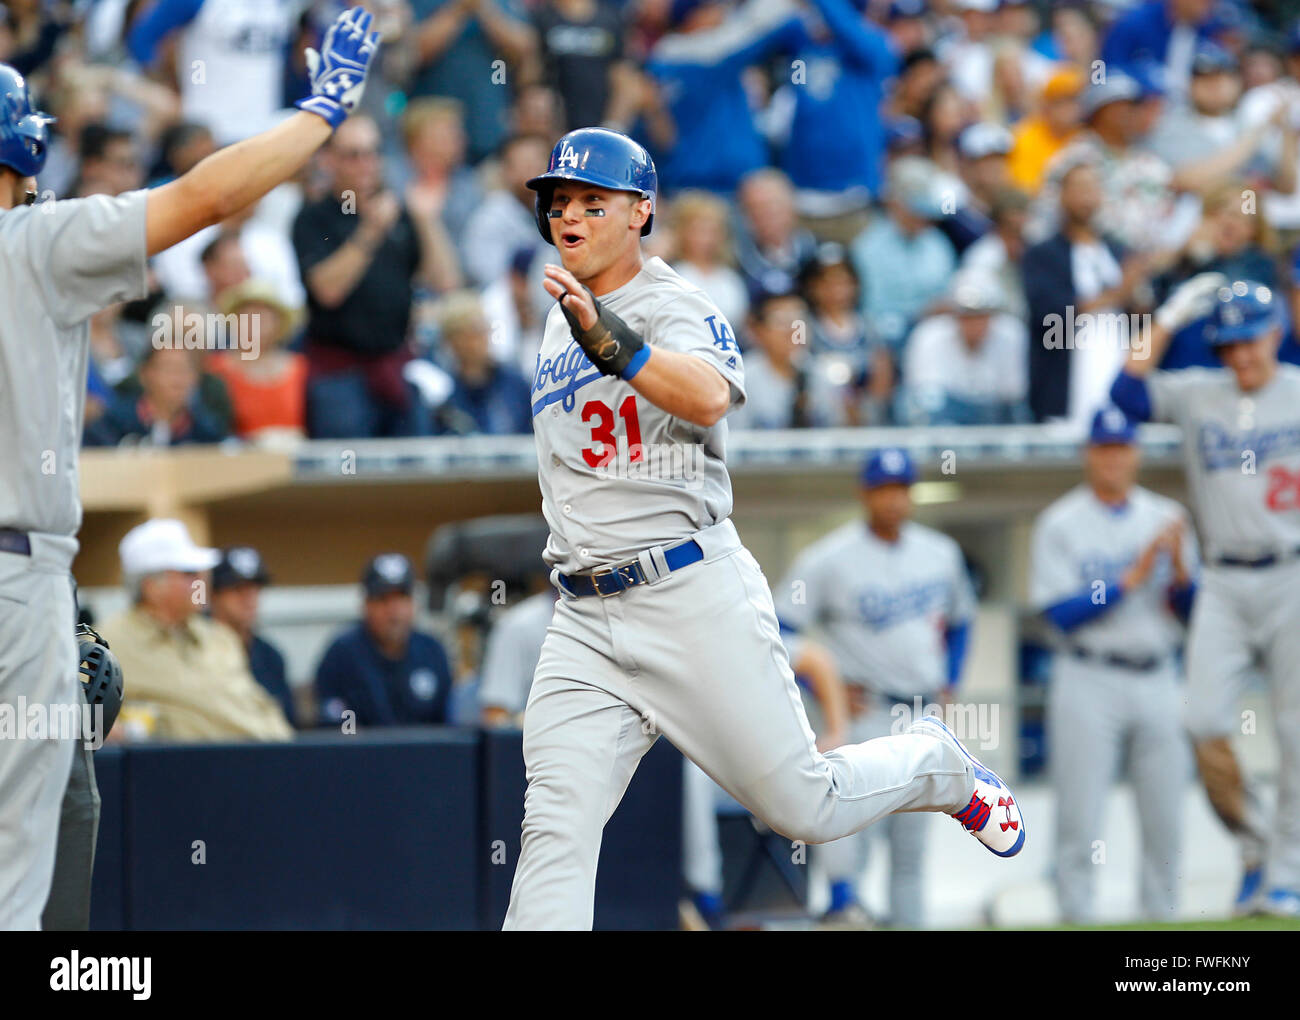 San Diego, California, USA. 4th Apr, 2016. Dodgers Joc Pederson scores on an A.J. Ellis hit in the 6th inning against - Stock Image